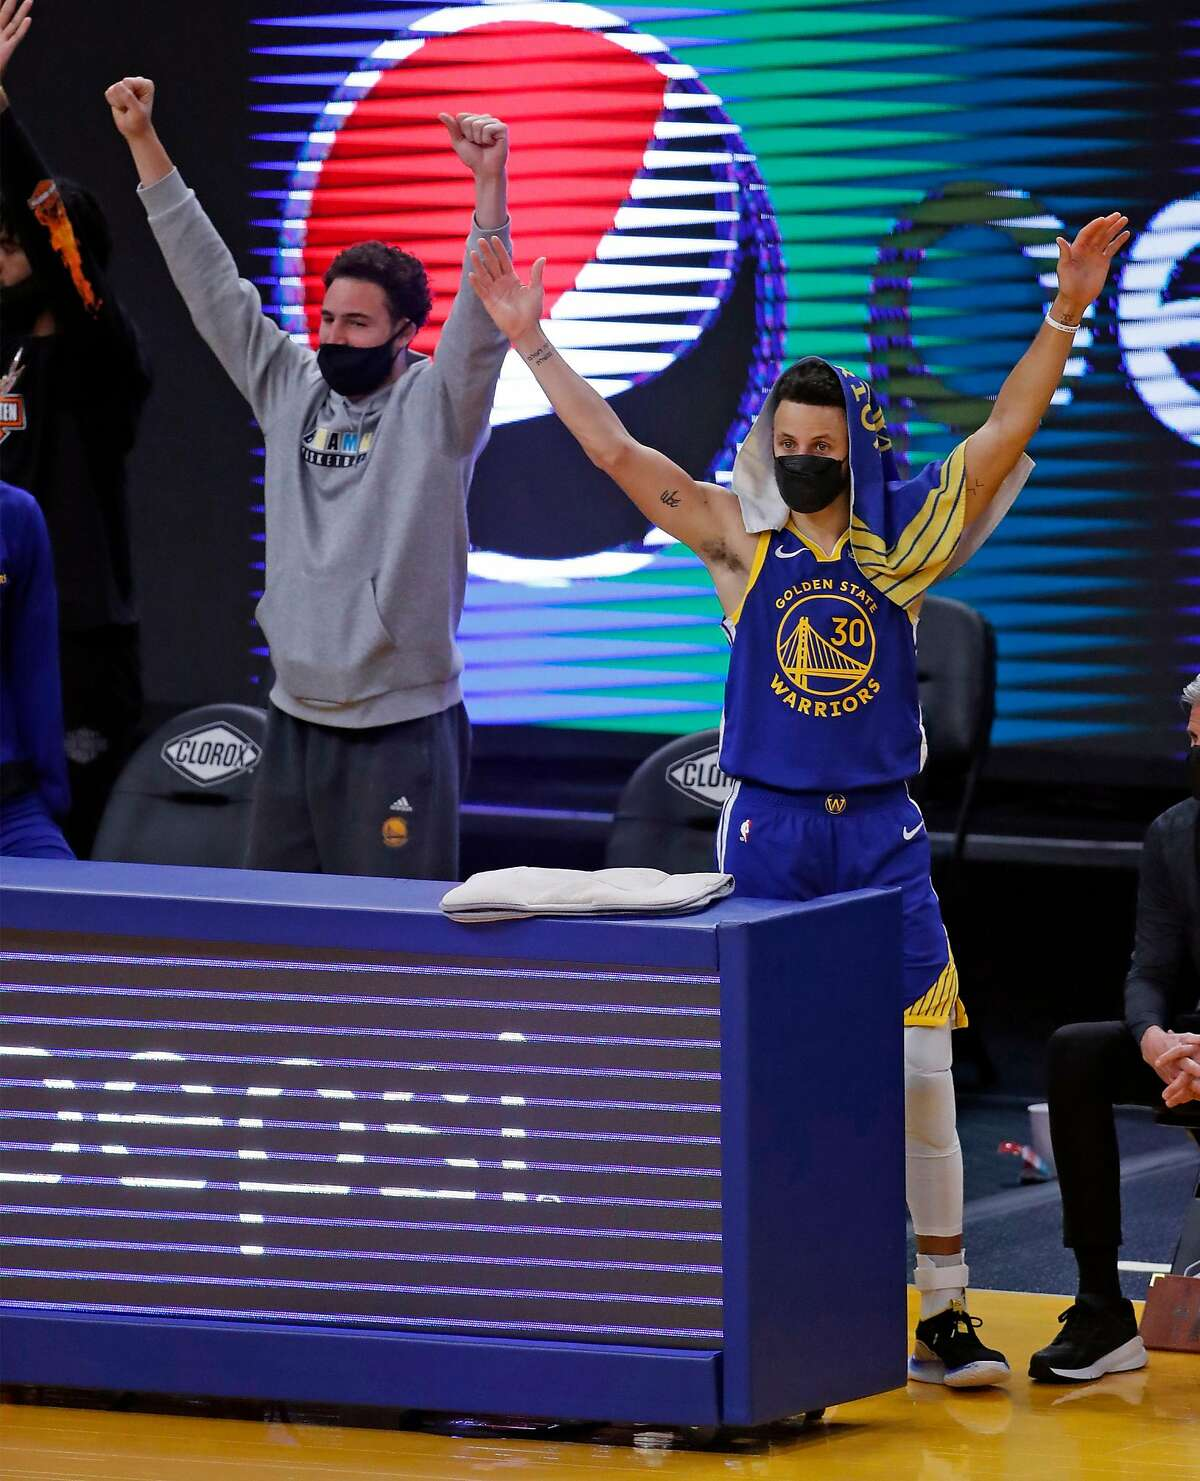 If all goes as planned next season, Klay Thompson (left) won't be a spectator and will be in uniform alongside Stephen Curry.